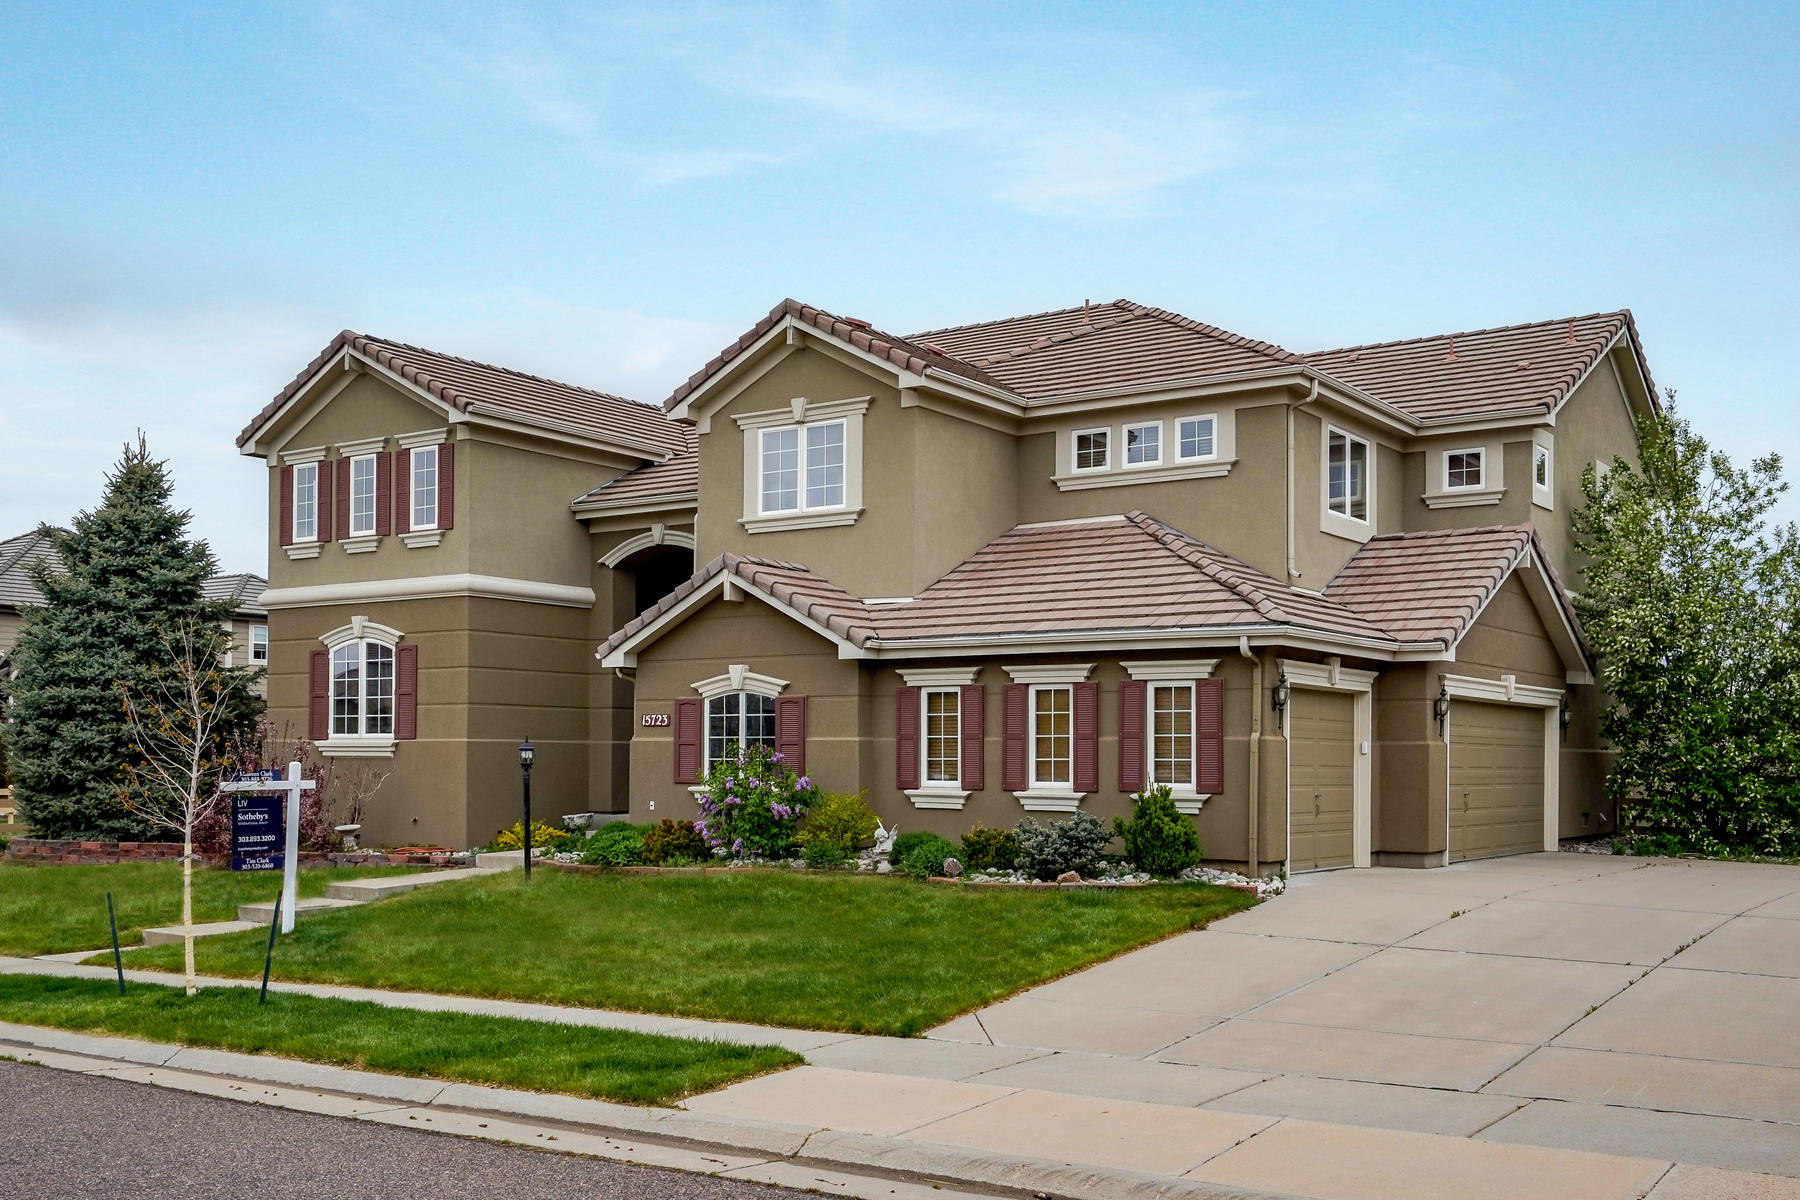 Property for Active at 15723 E Orchard Pl 15723 E Orchard Pl Centennial, Colorado 80016 United States